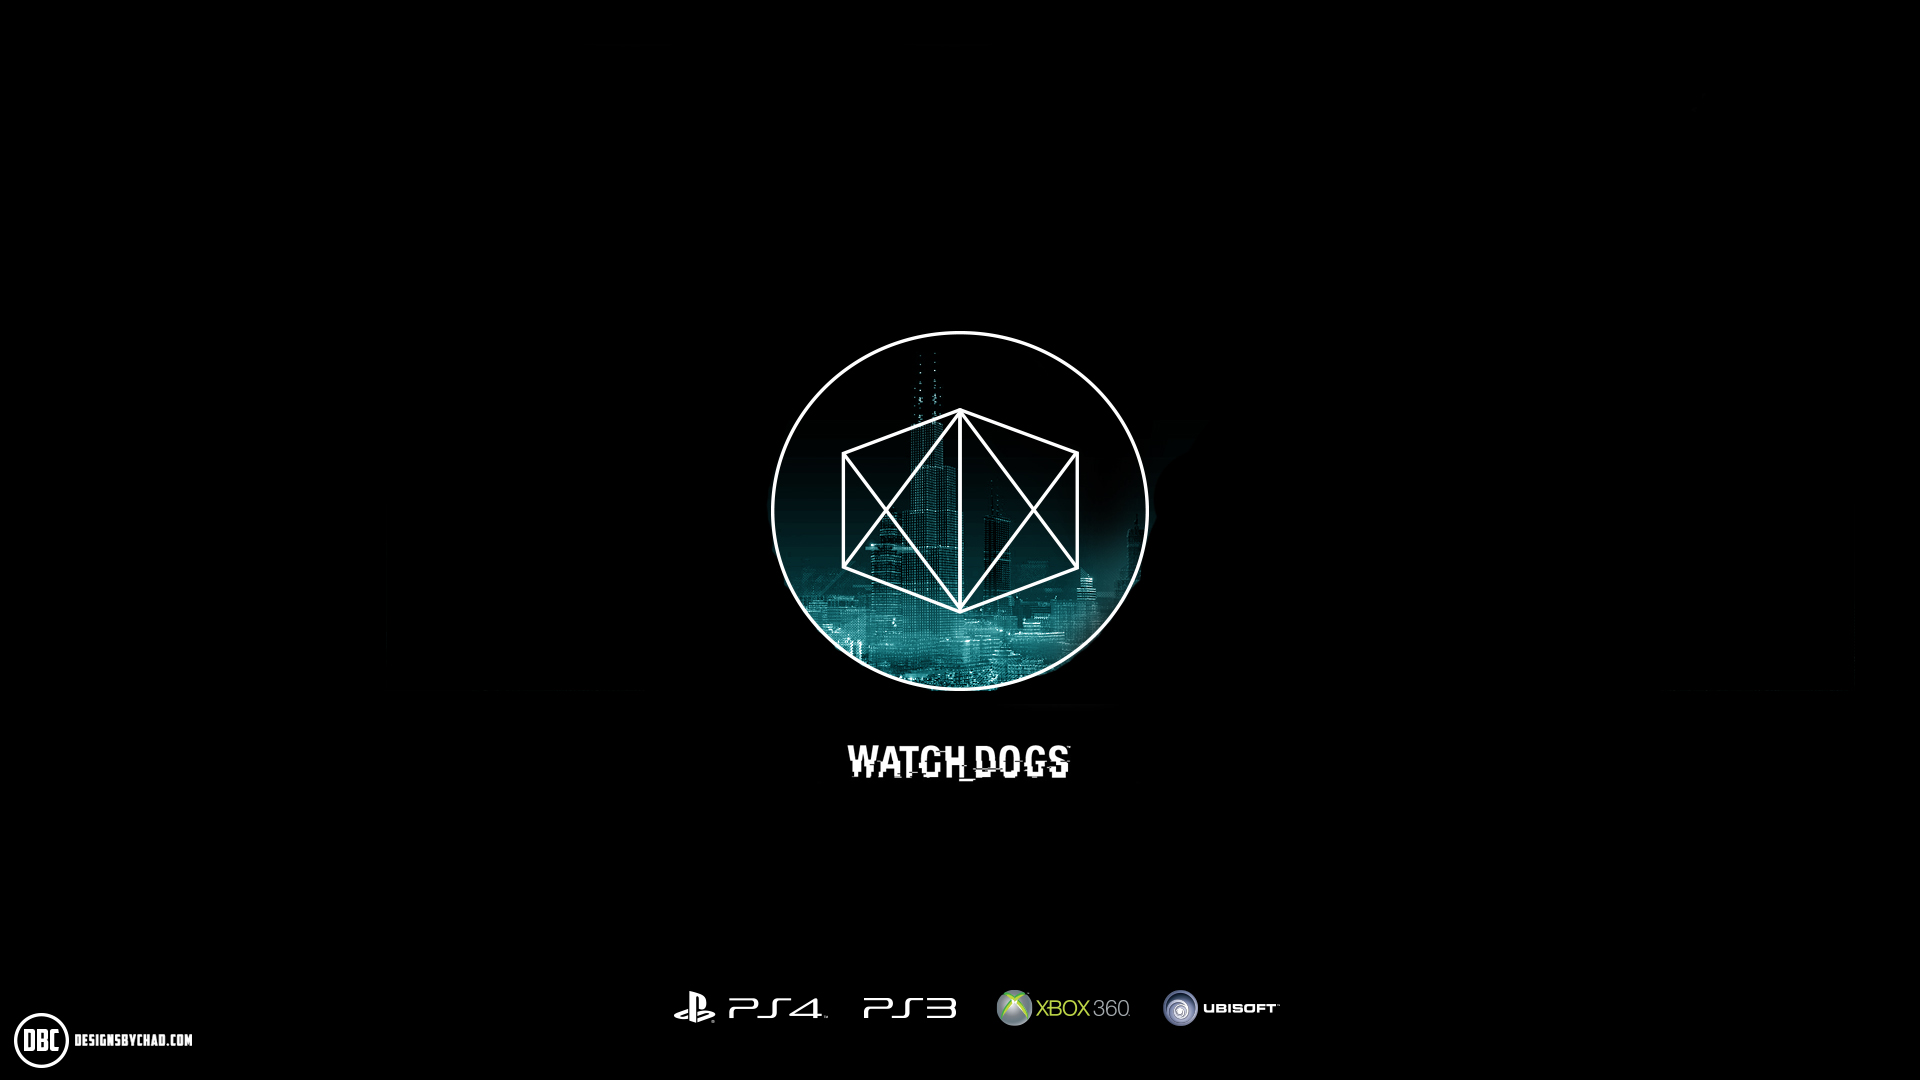 watch dogs fox logo wallpaper - photo #16